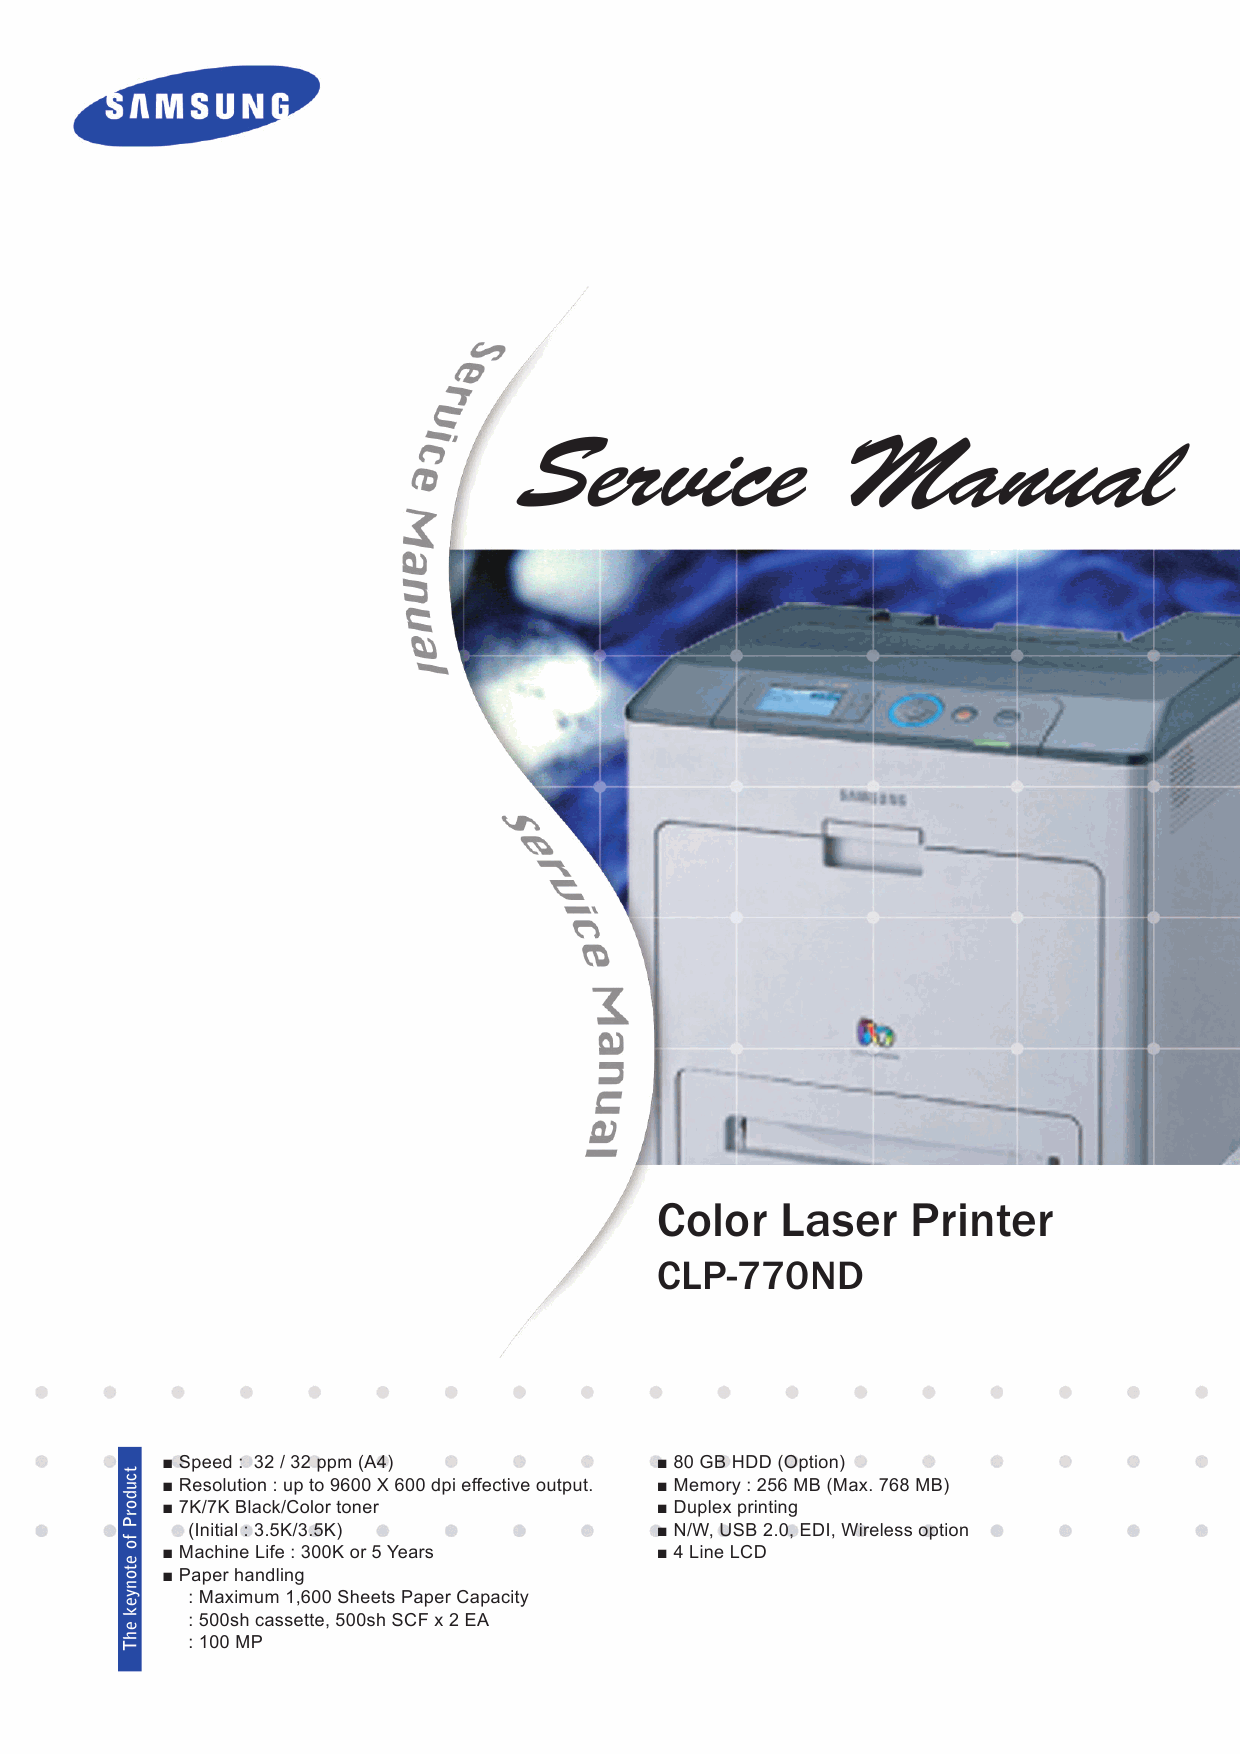 Samsung Color-Laser-Printer CLP-770ND Parts and Service Manual-1